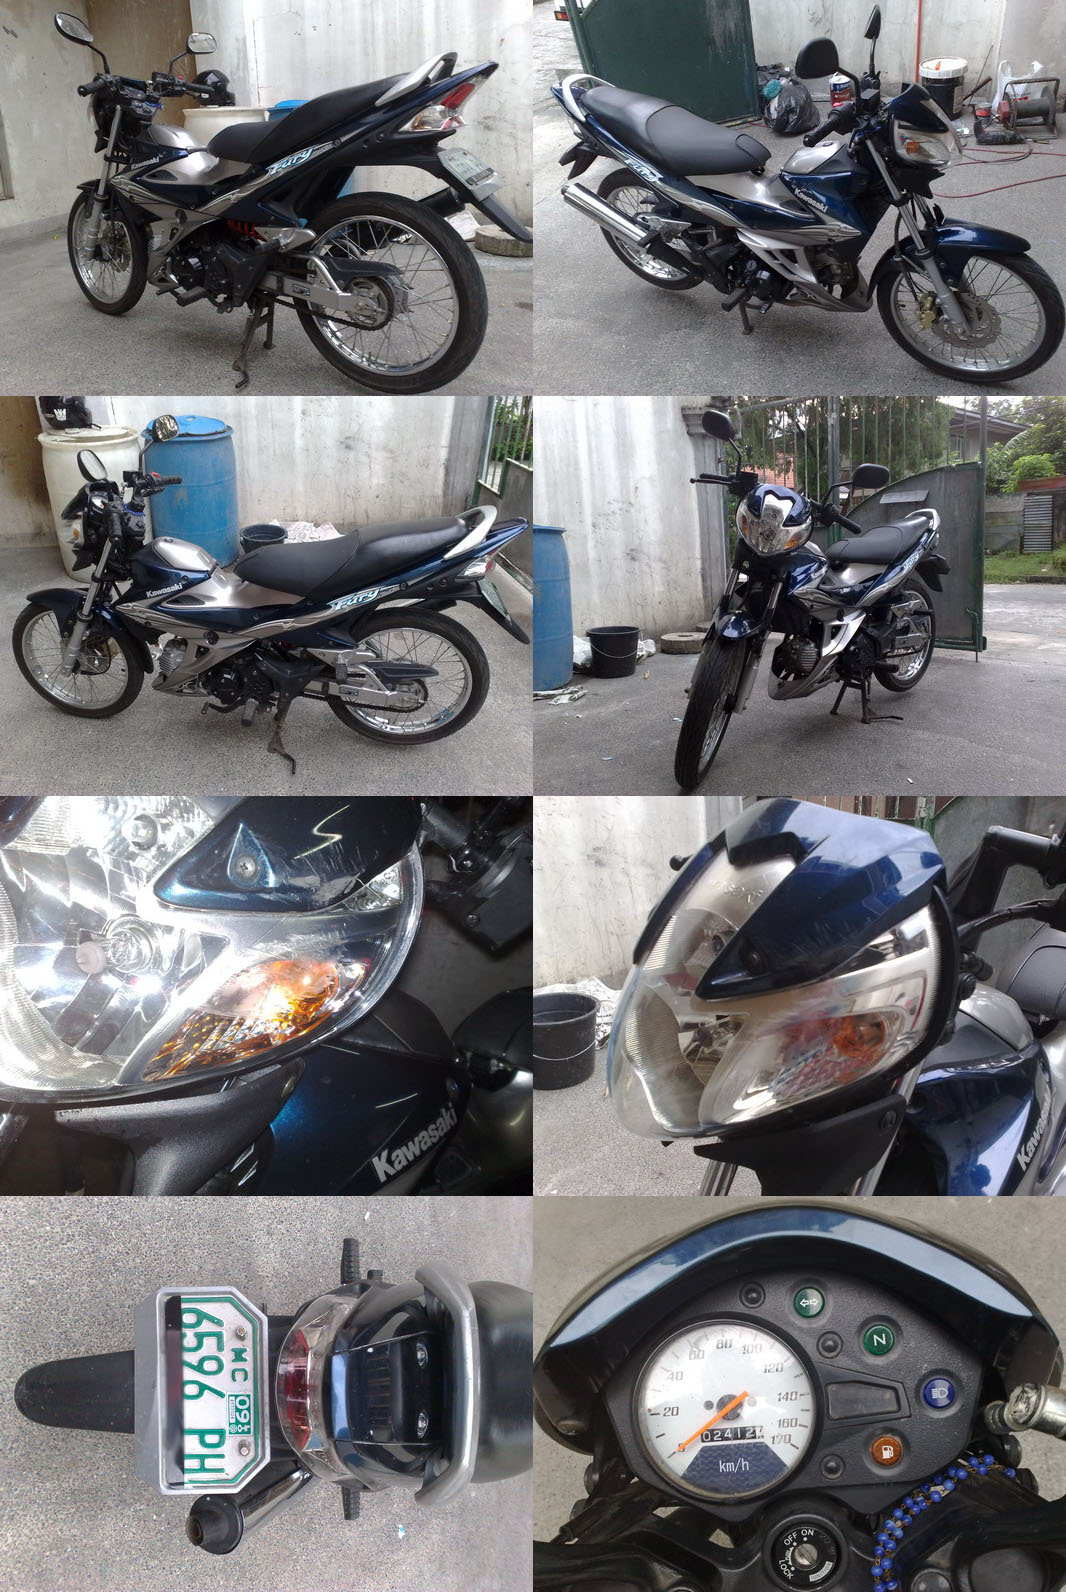 Kawasaki fury for sale